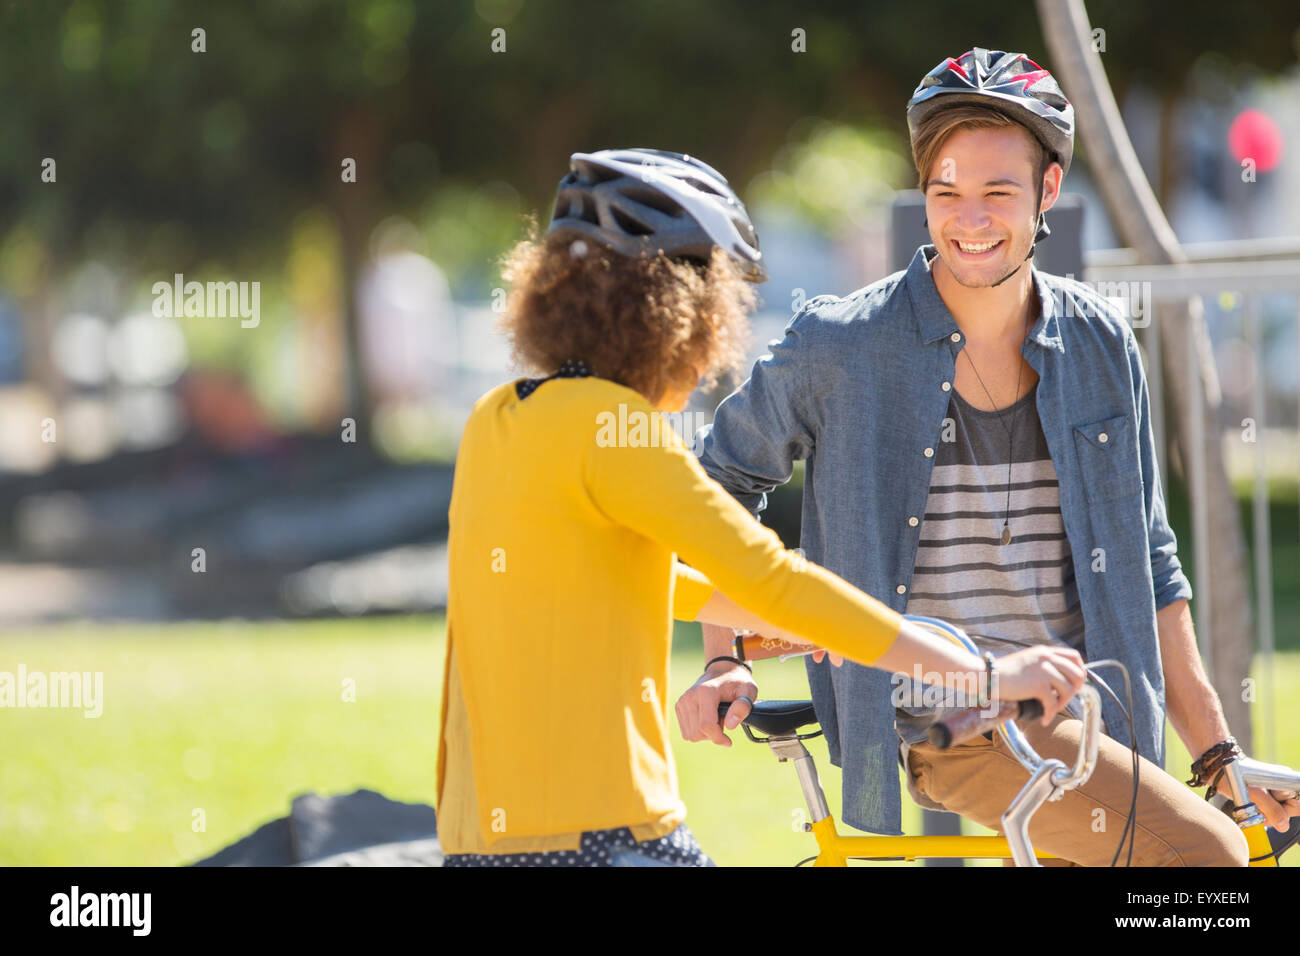 Man and woman with bicycles wearing helmets and talking in park Stock Photo